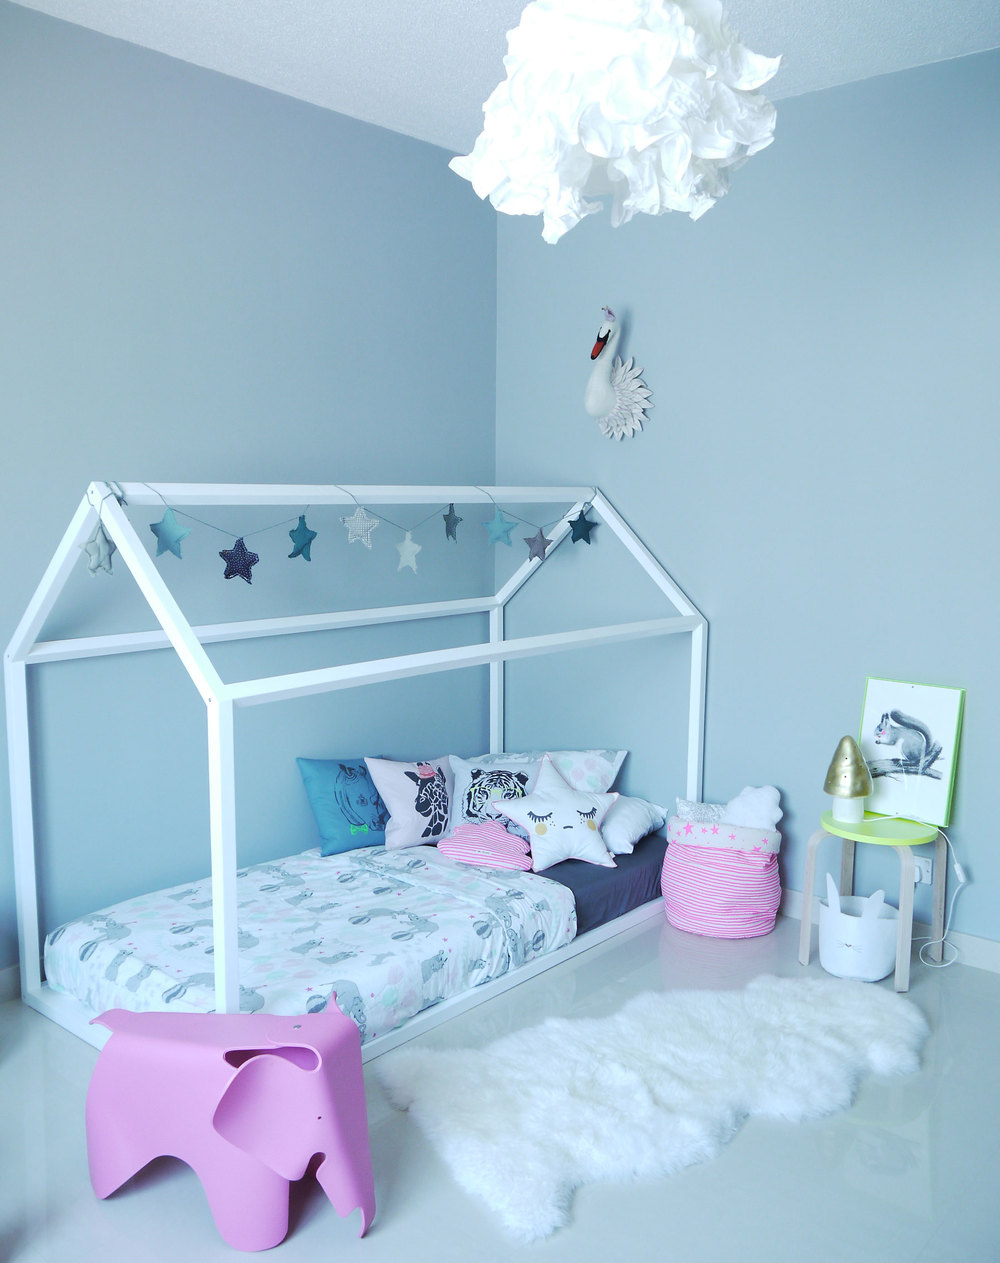 Stella's new bedroom in the desert: a soothing yet playful space in grey neutral tones with hints of bright pink of course